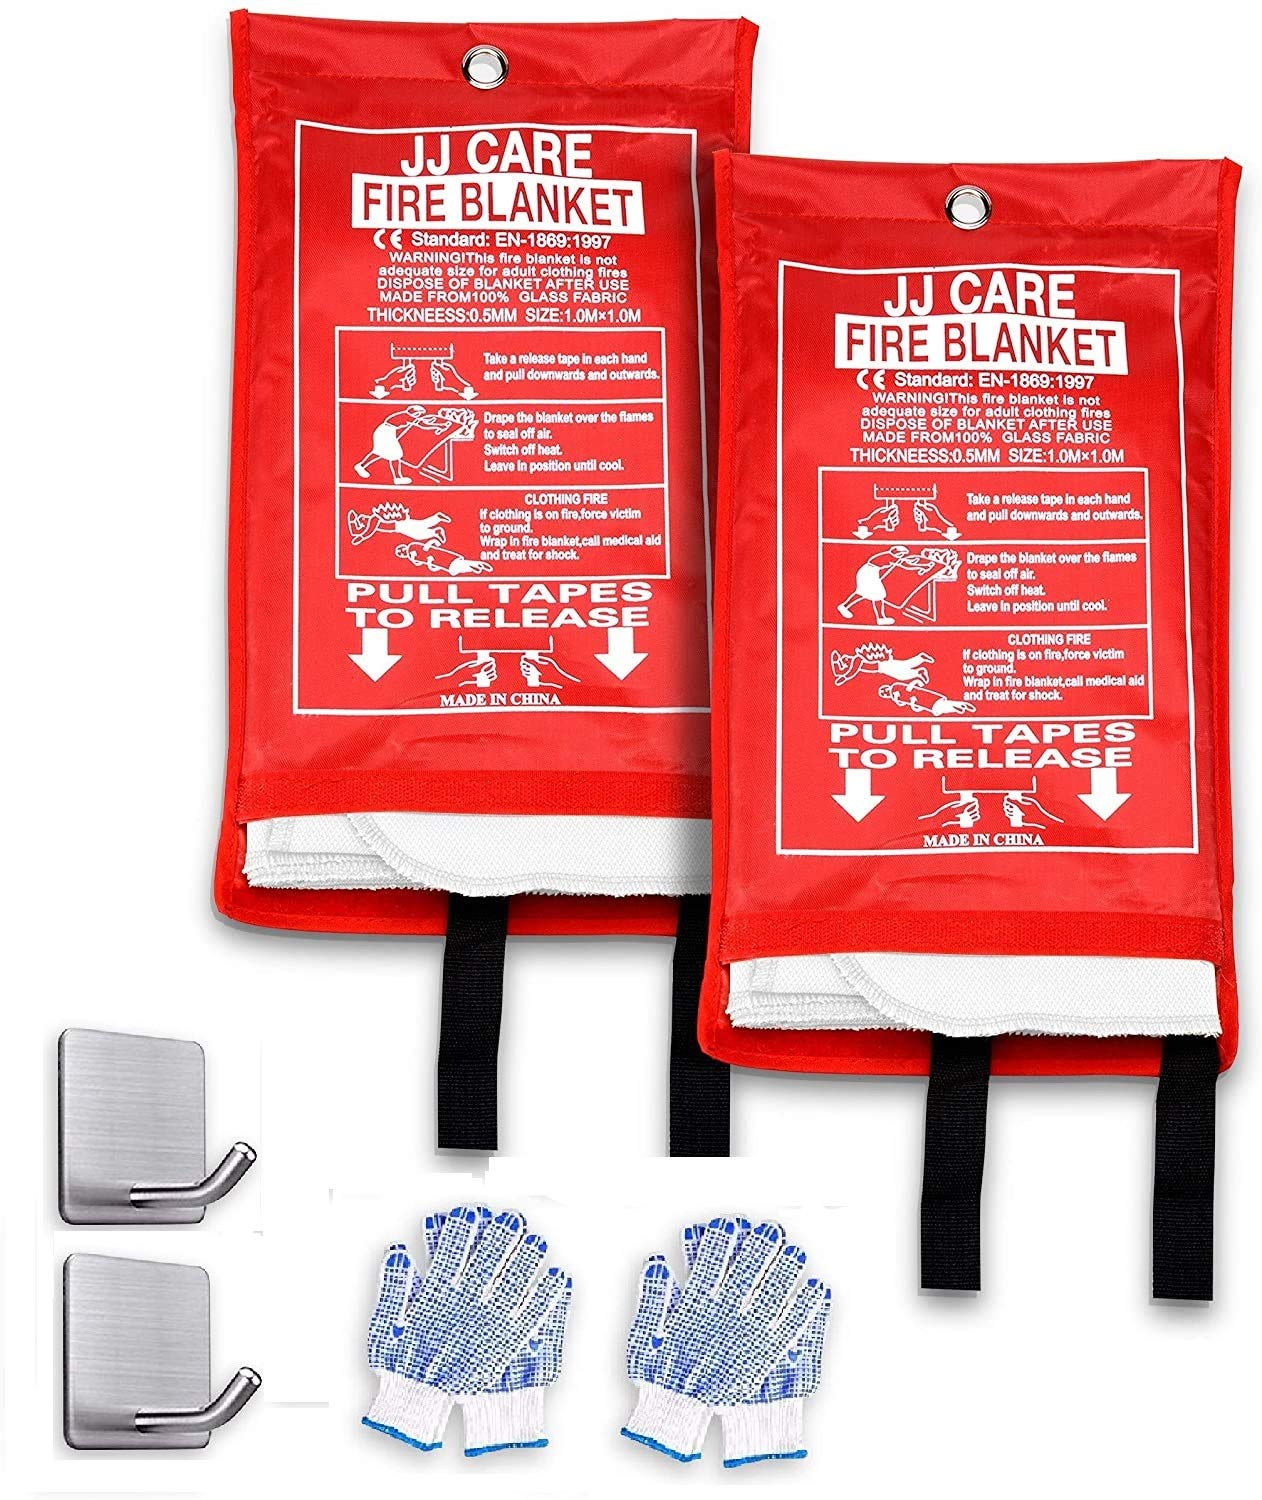 """JJ Care Fire Blanket Pack of 2 Fire Fighting Suppression Blankets Fiberglass Cloth (40""""x40"""") Flame Retardant Blanket Emergency Survival kit with 2 Hooks & Grips for Camping Kitchen & Warehouse Safety"""